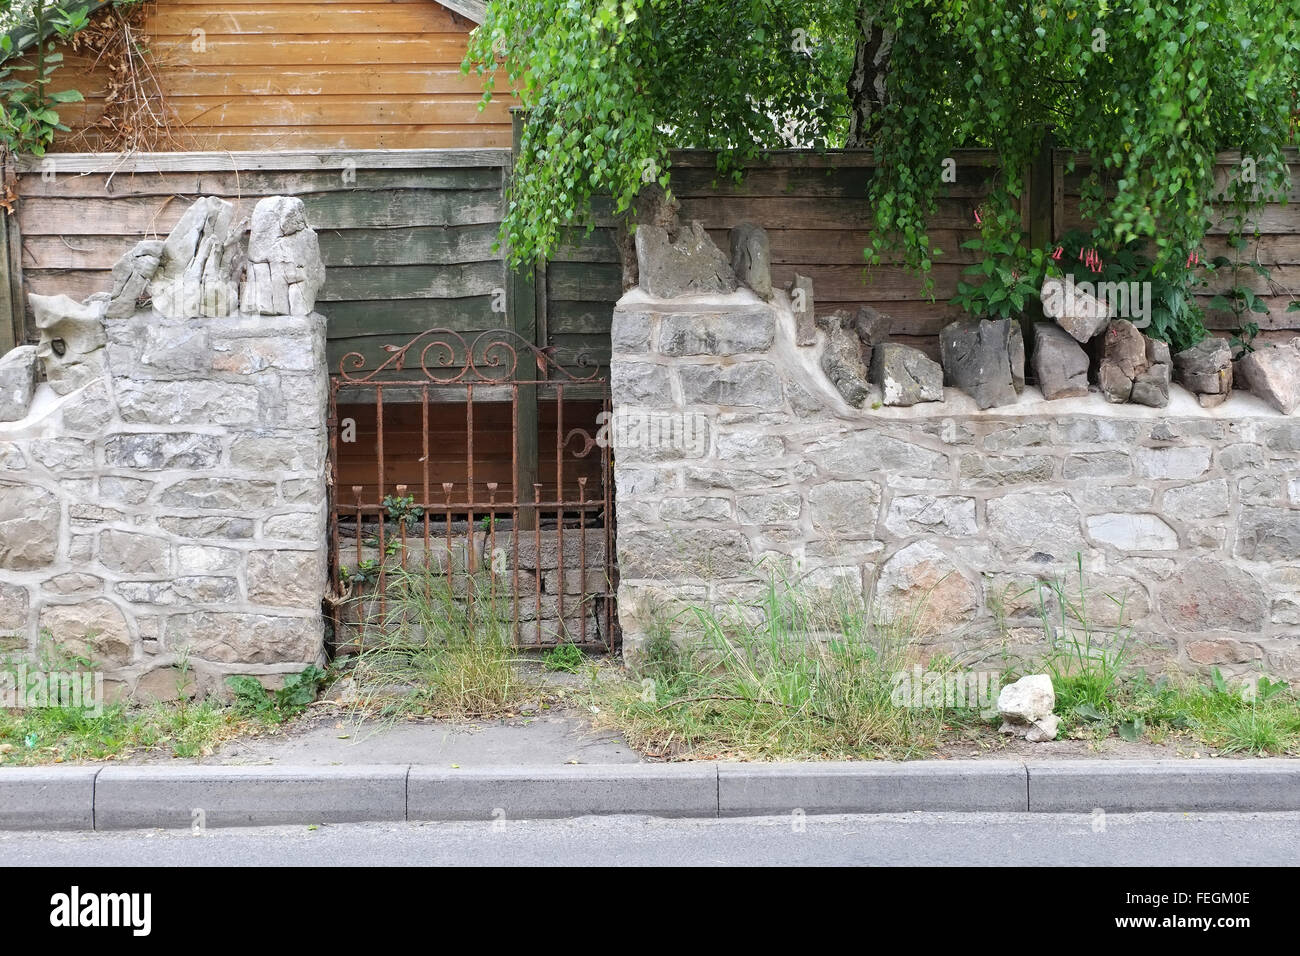 Obscured garden gate, leading into nowhere. - Stock Image